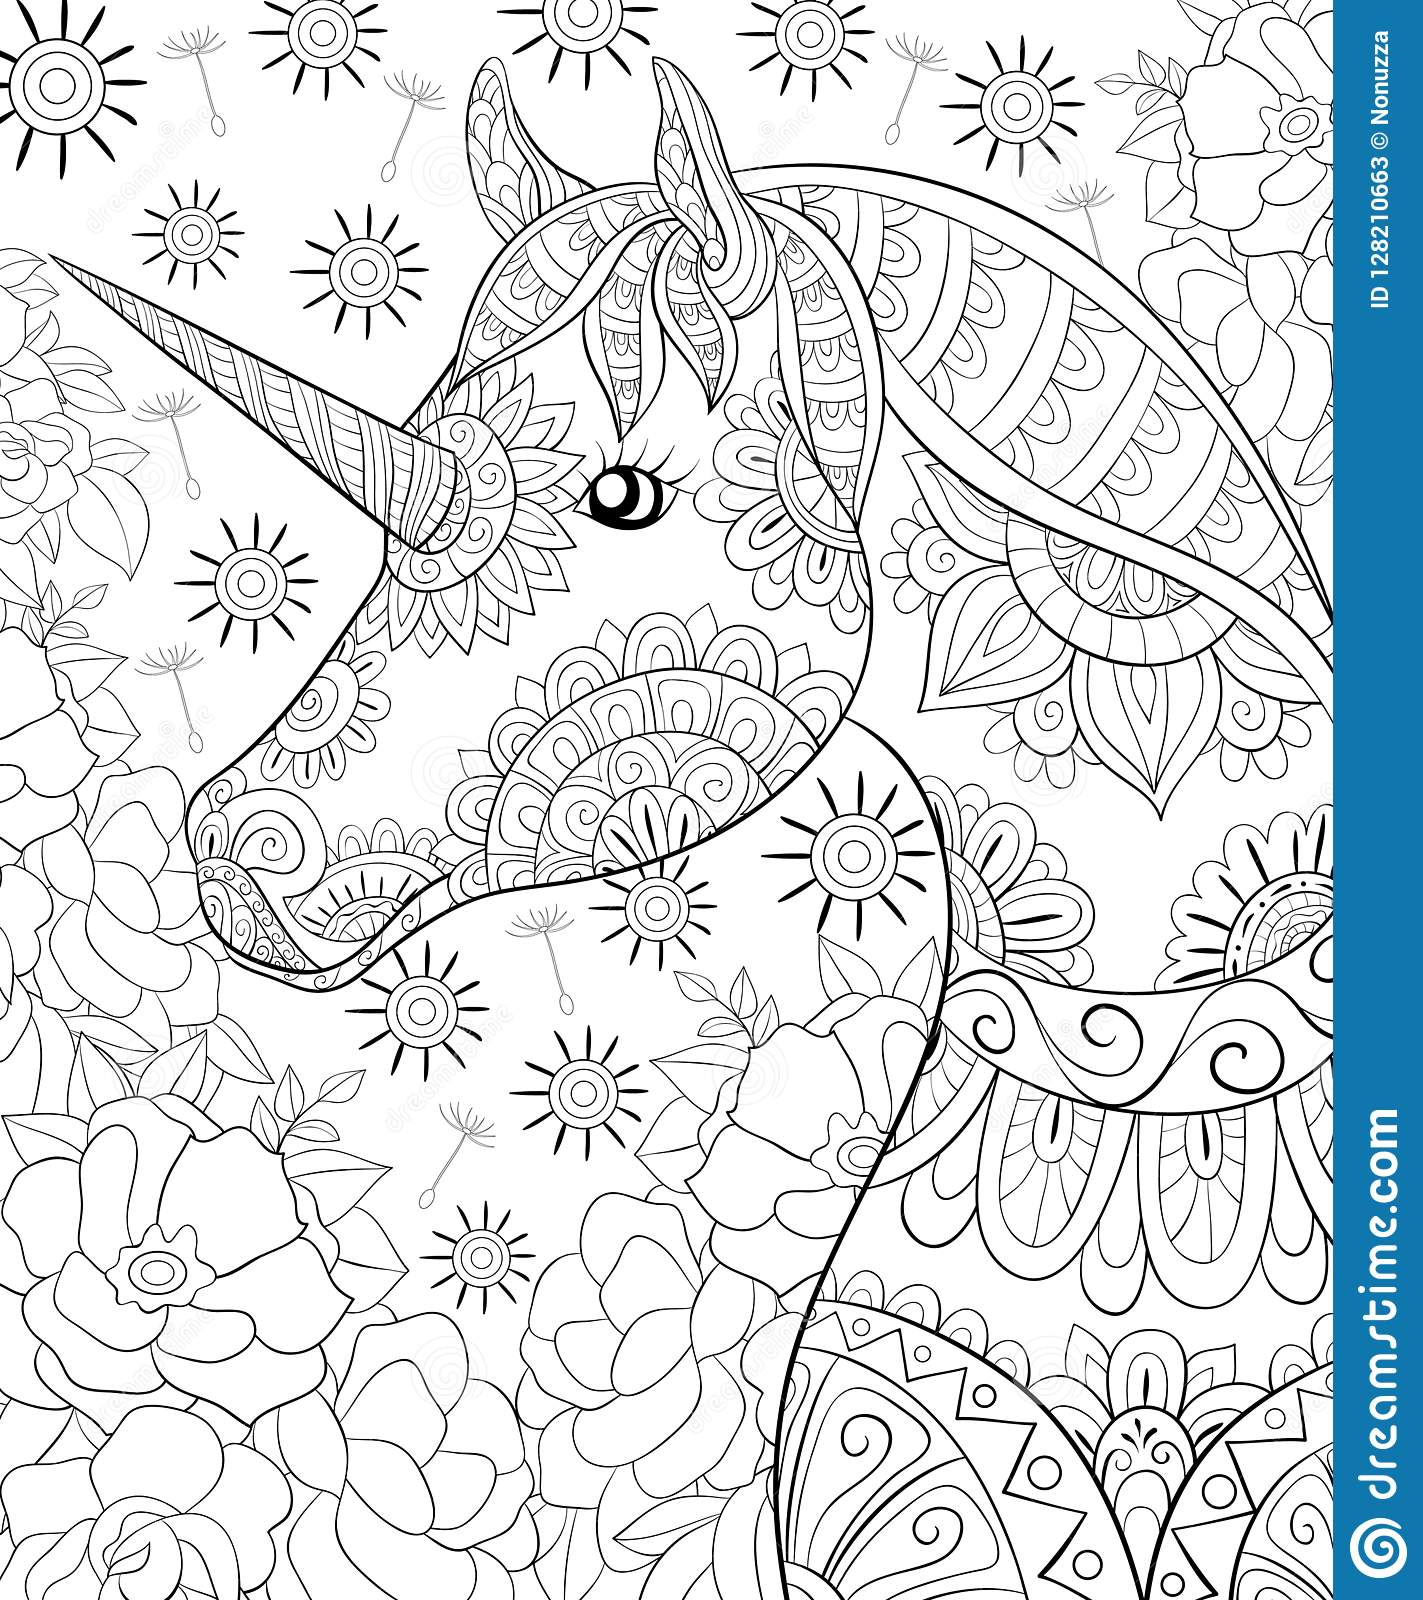 A cute horse with zen ornaments image for adults line art style illustration for print poster design